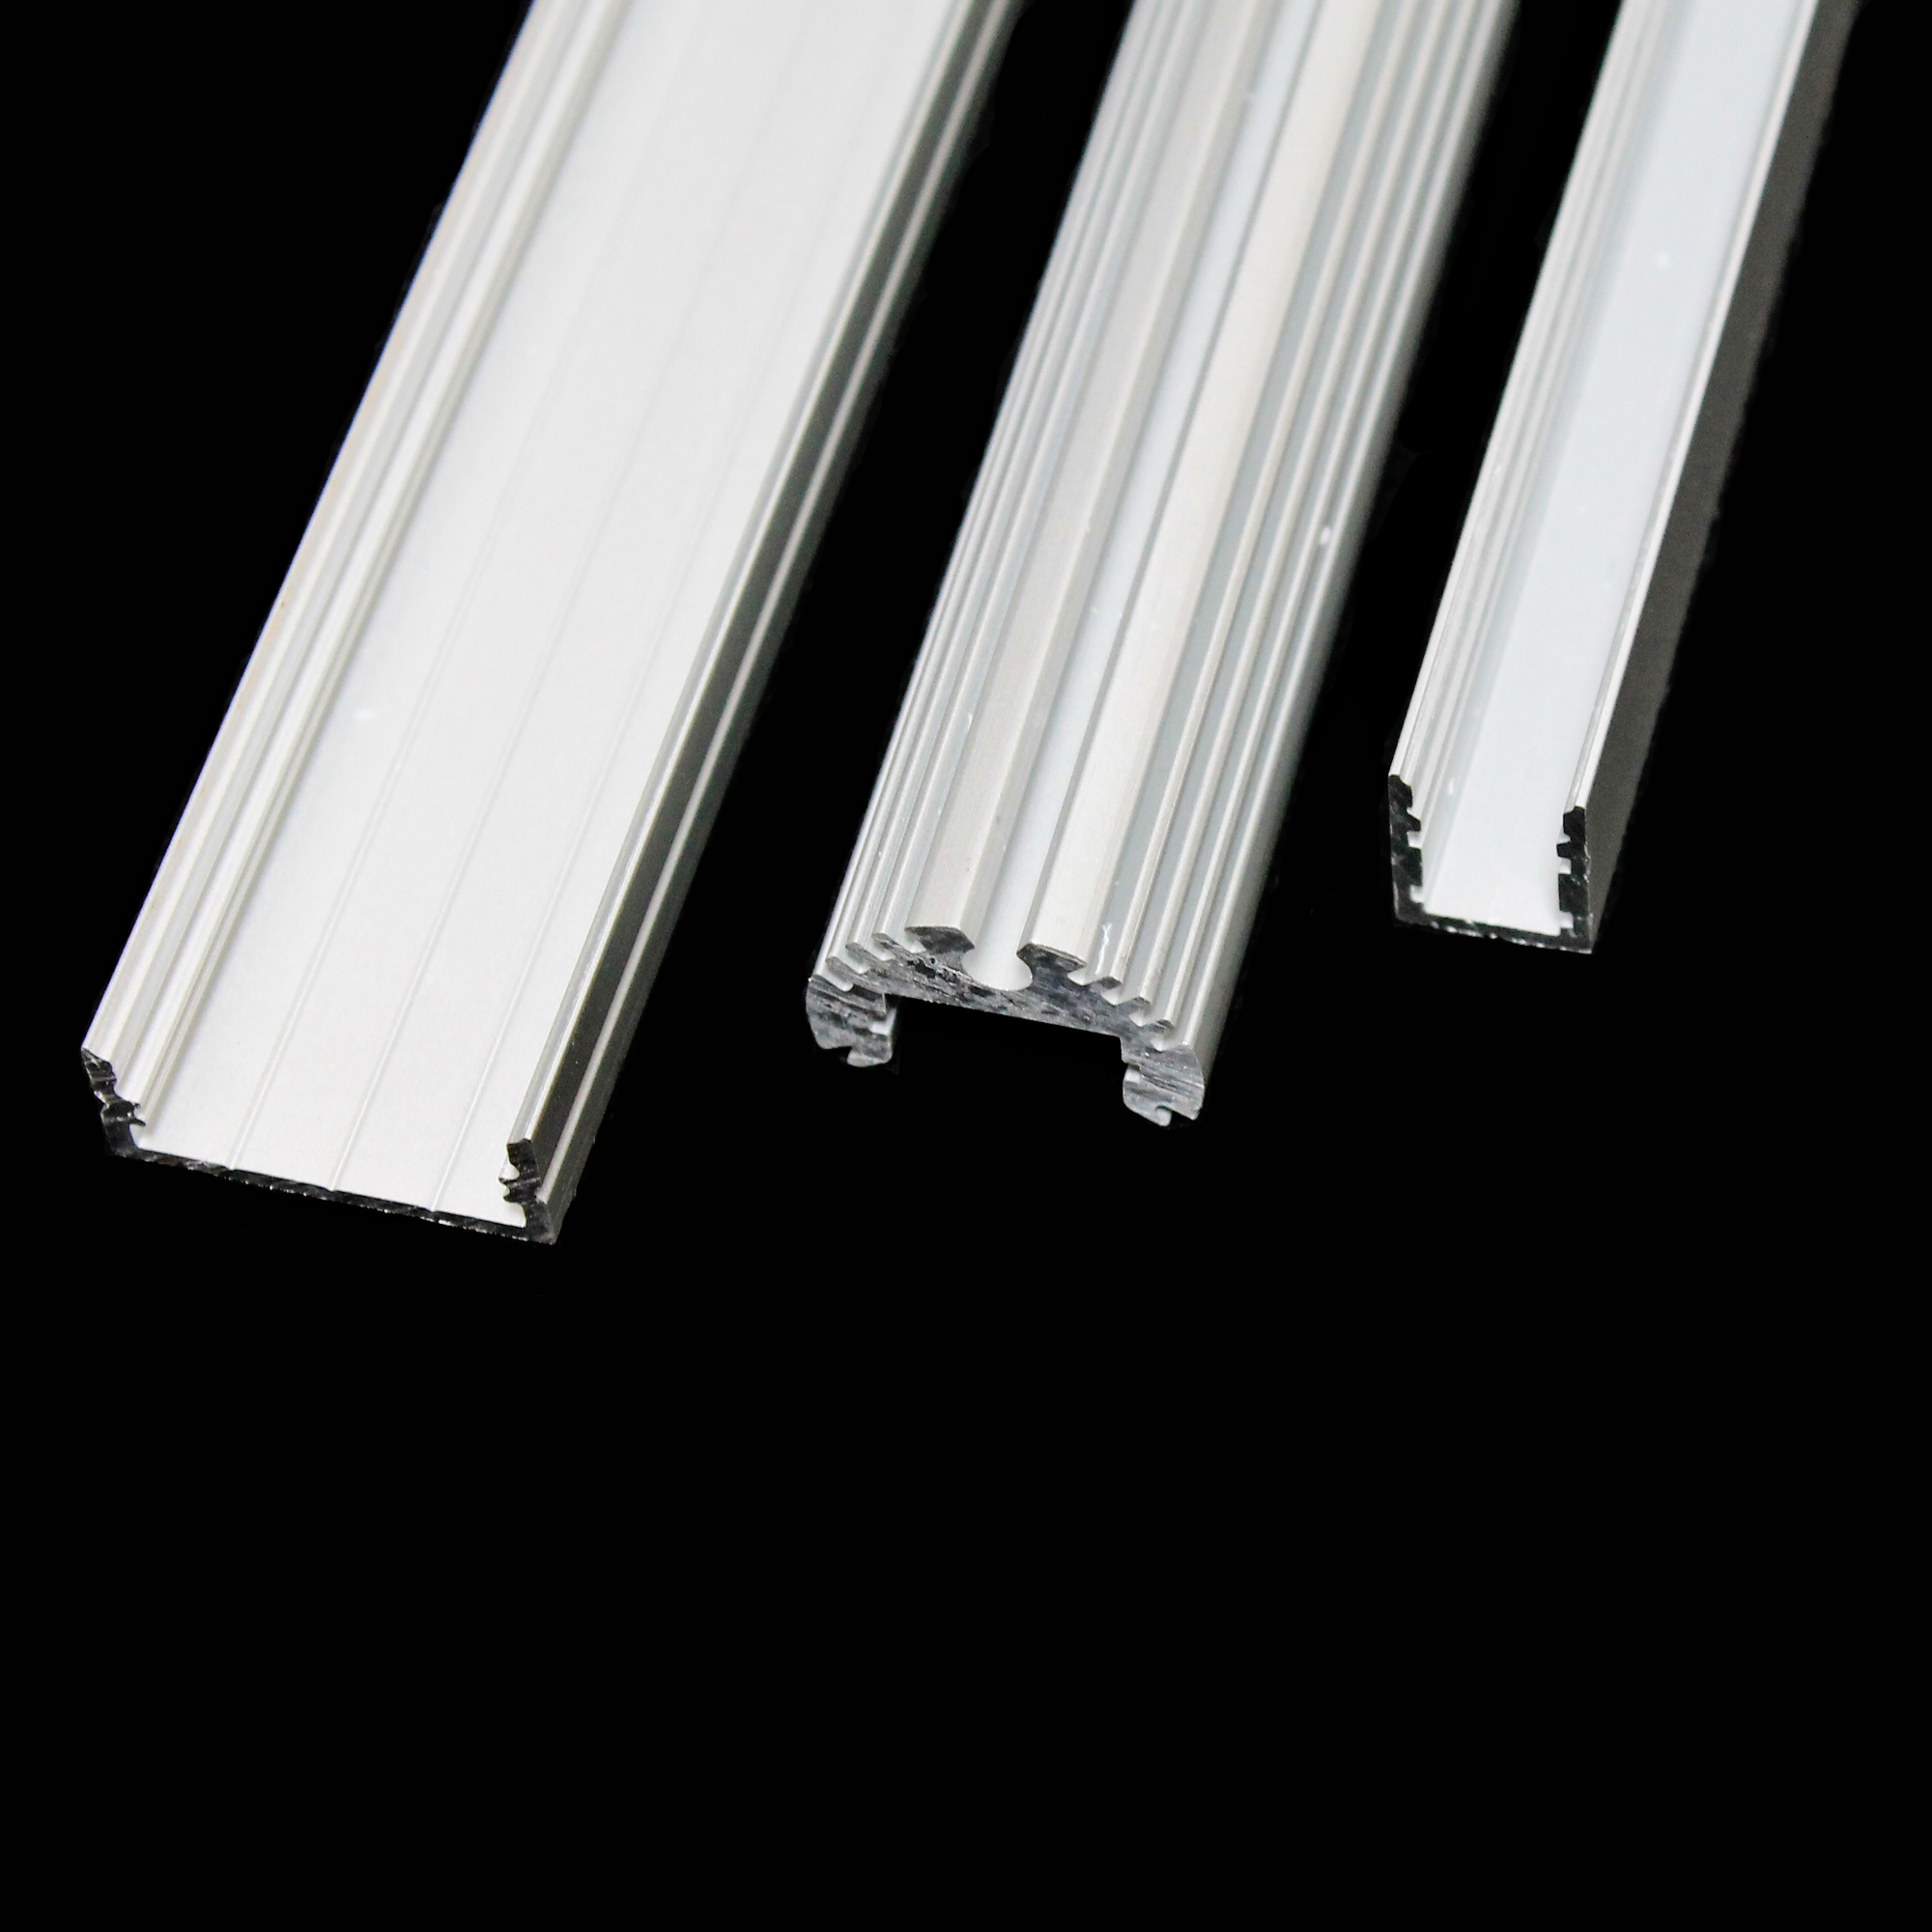 Led Home Lighting Business Environmentallights.com Adds Klus Aluminum Channel Line